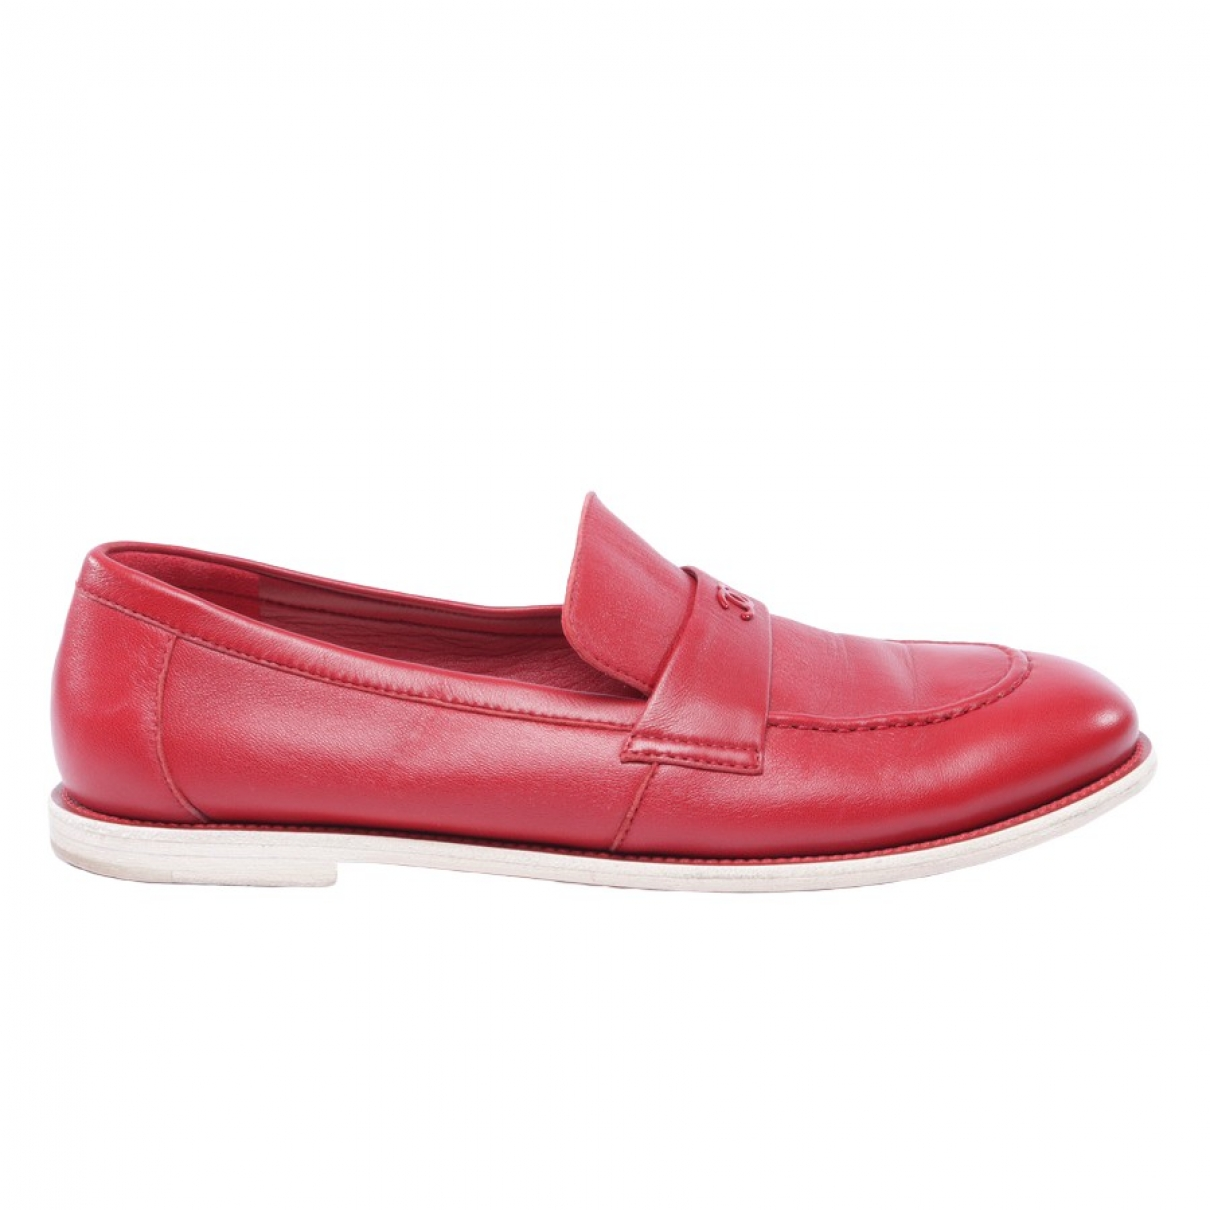 Chanel \N Red Leather Trainers for Women 41.5 EU